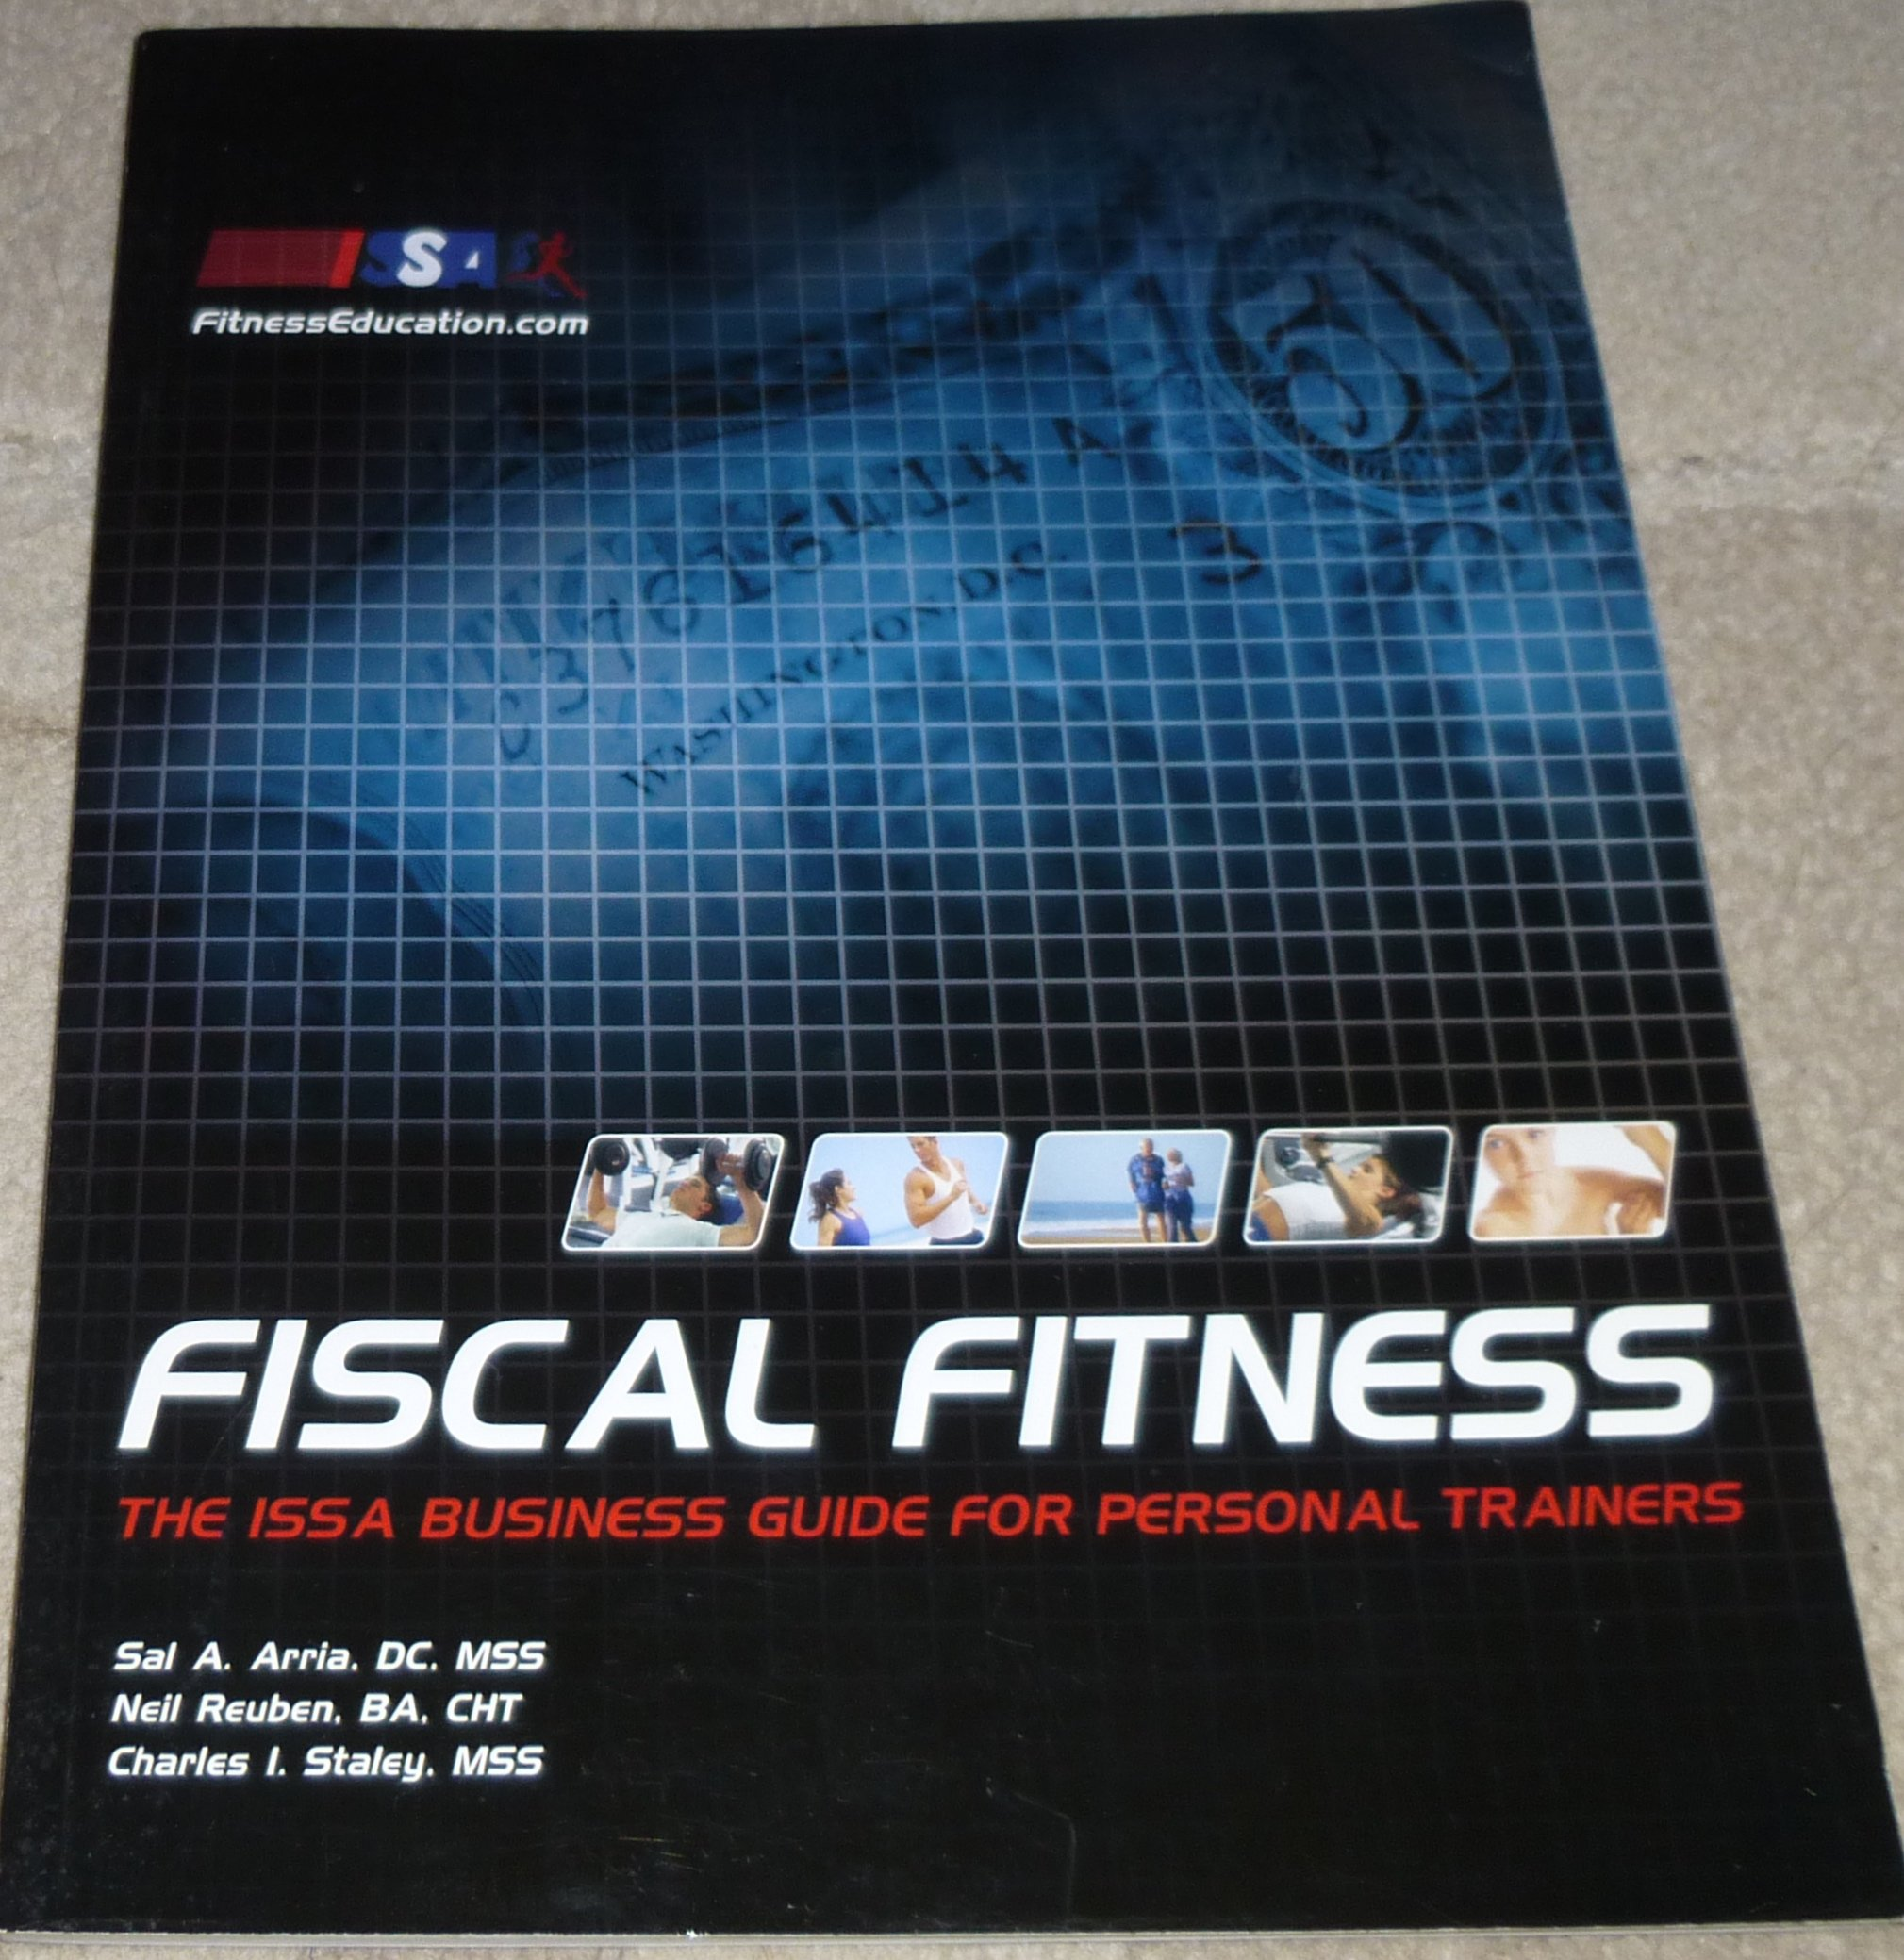 Fiscal Fitness (The ISSA Business Guide for Personal Trainers) ebook